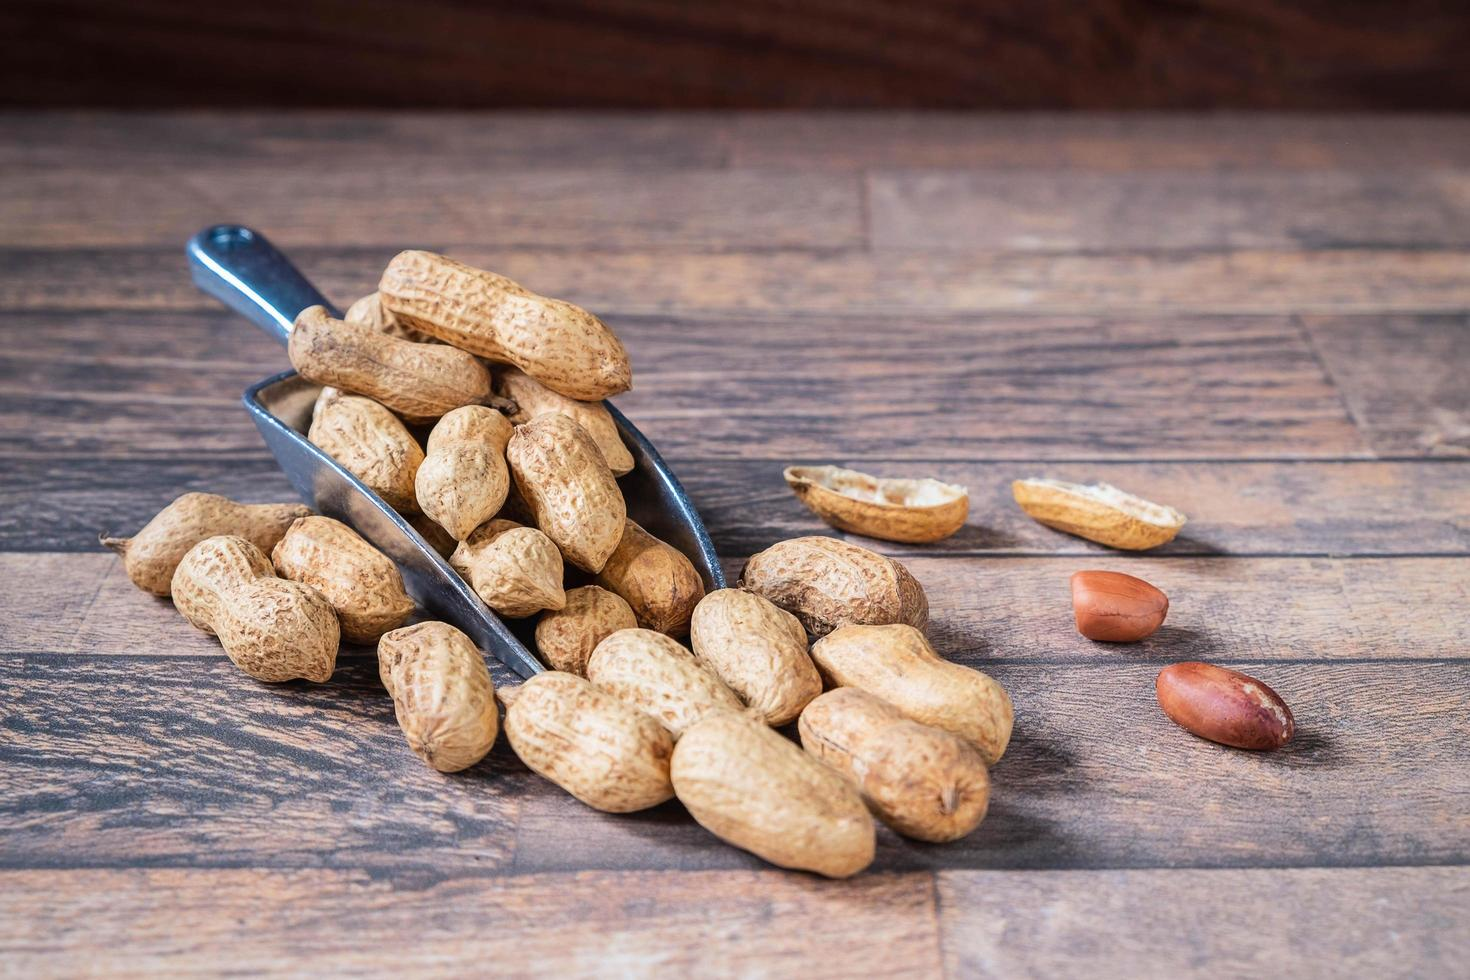 Peanuts in shell  photo